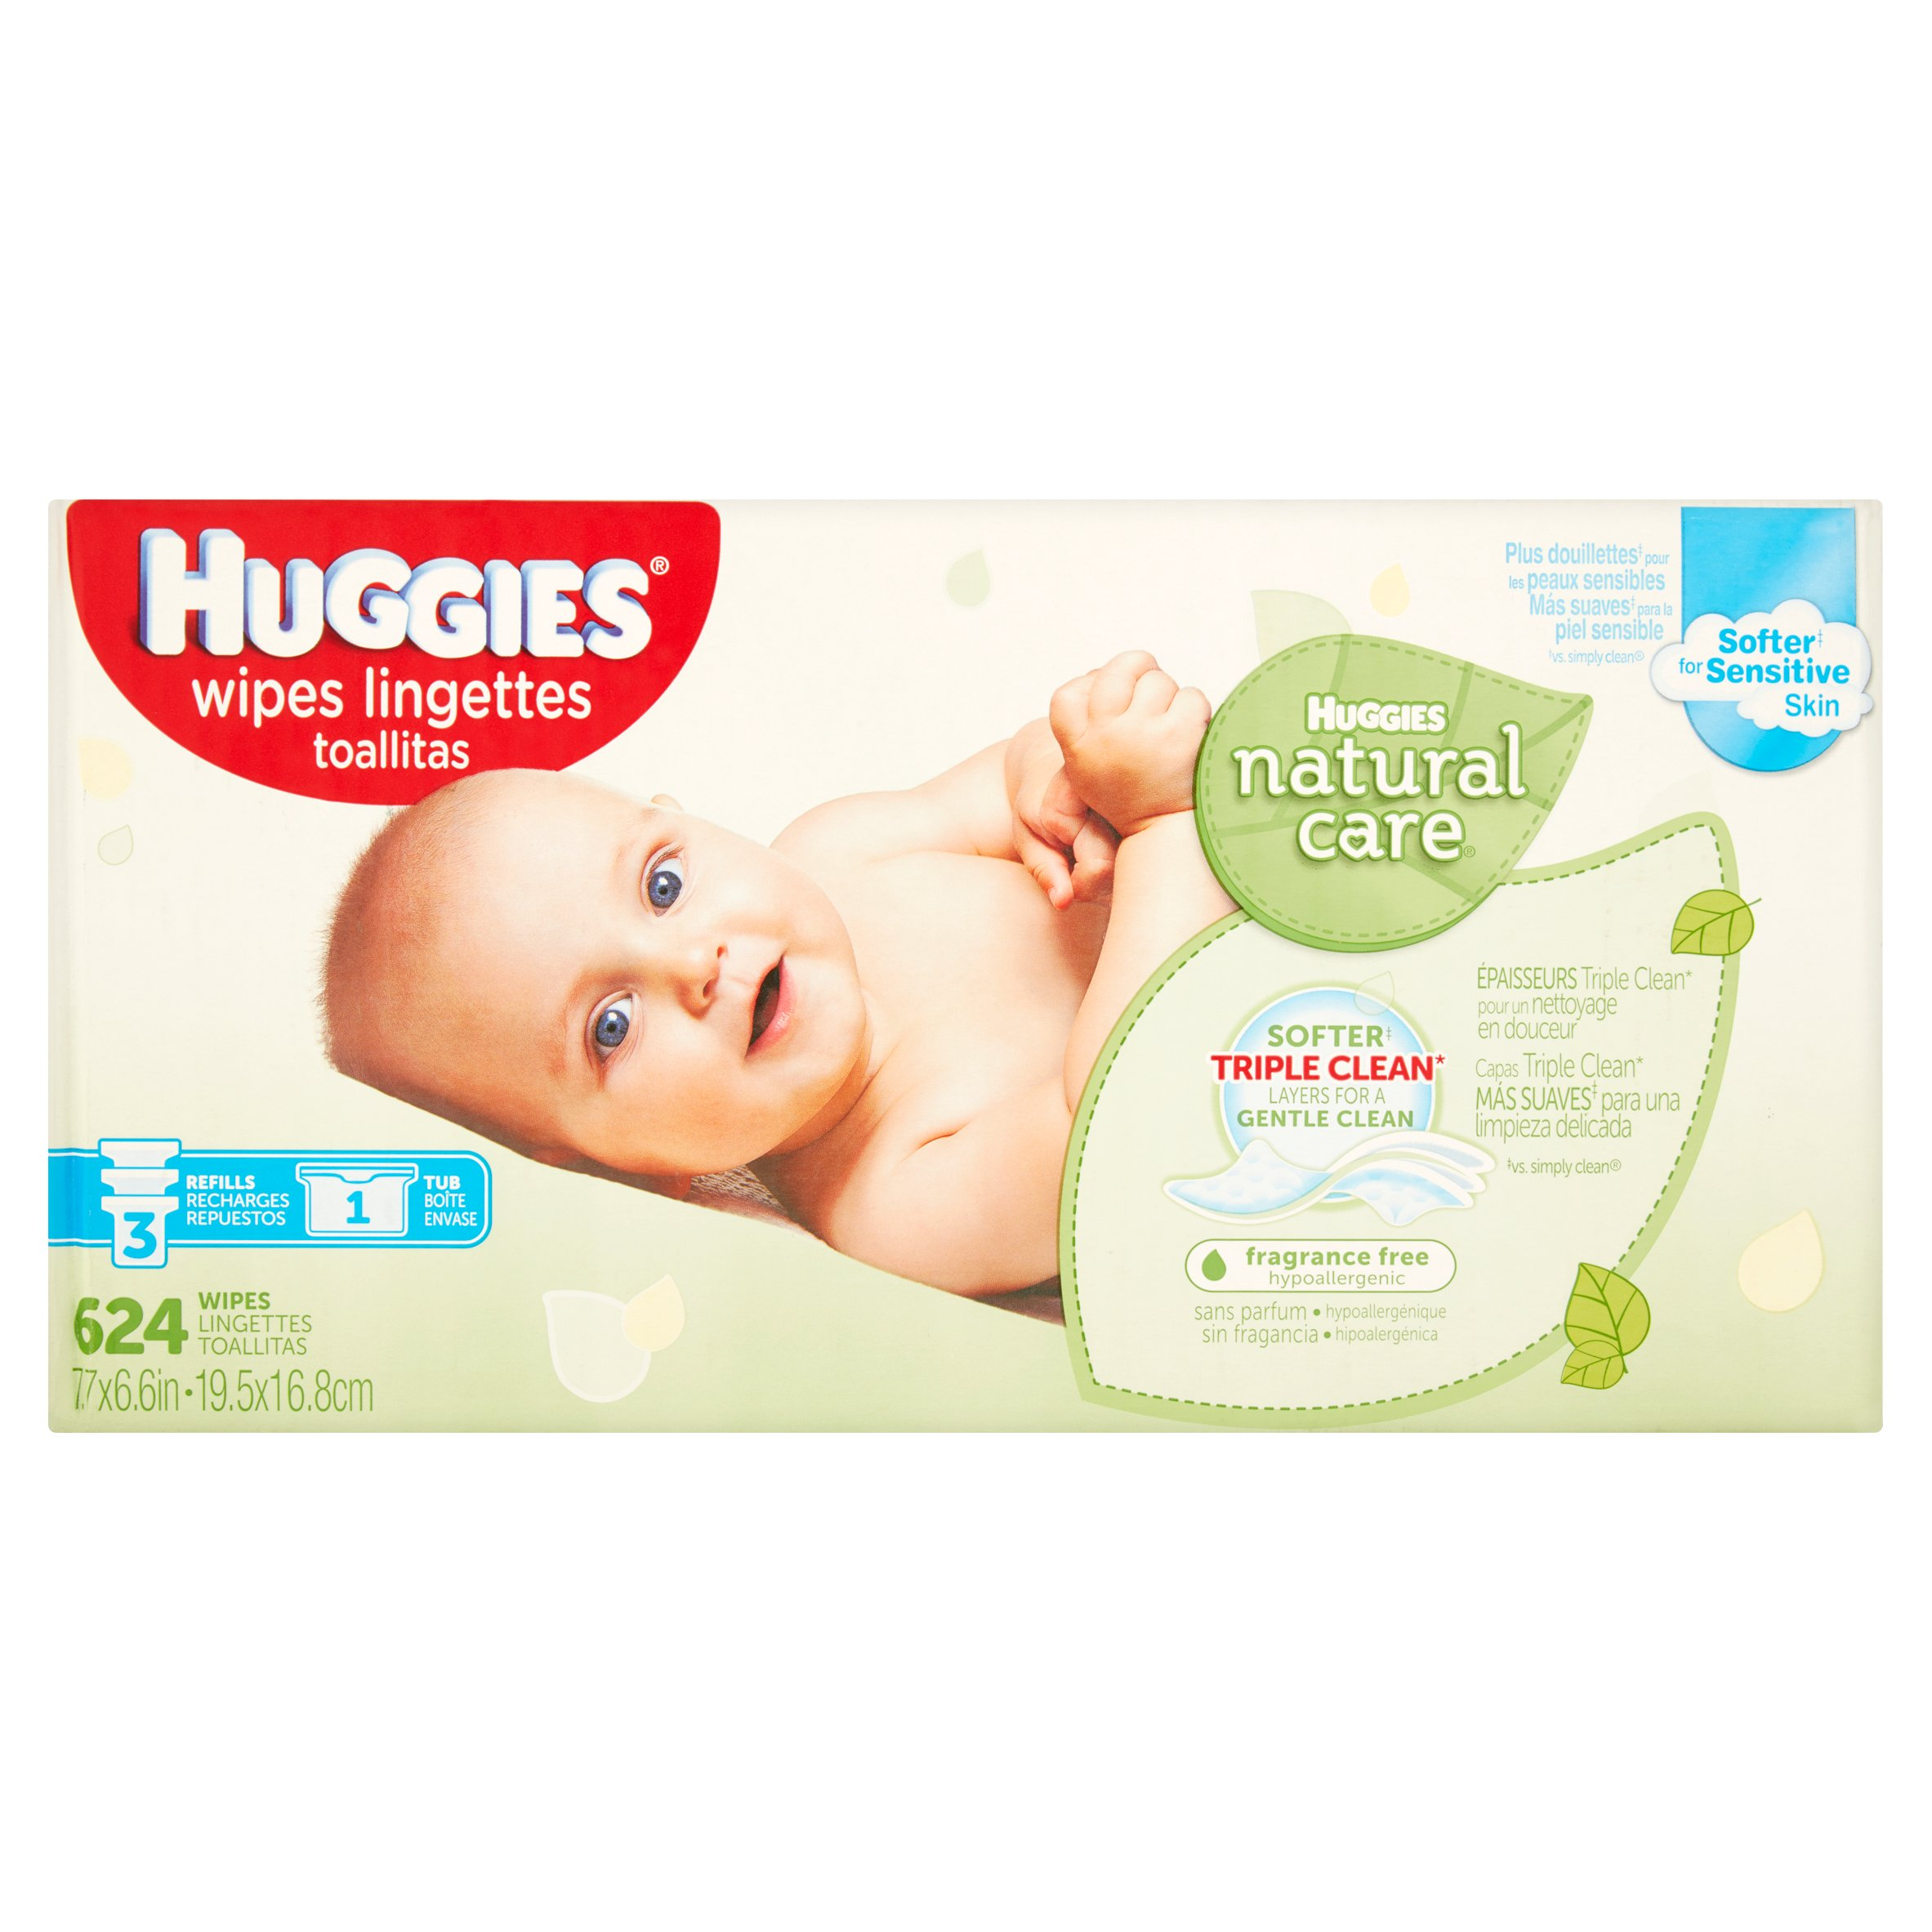 Huggies Natural Care Baby Wipes, Unscented, 3 Refills + 1 Tub (624 count) by HUGGIES